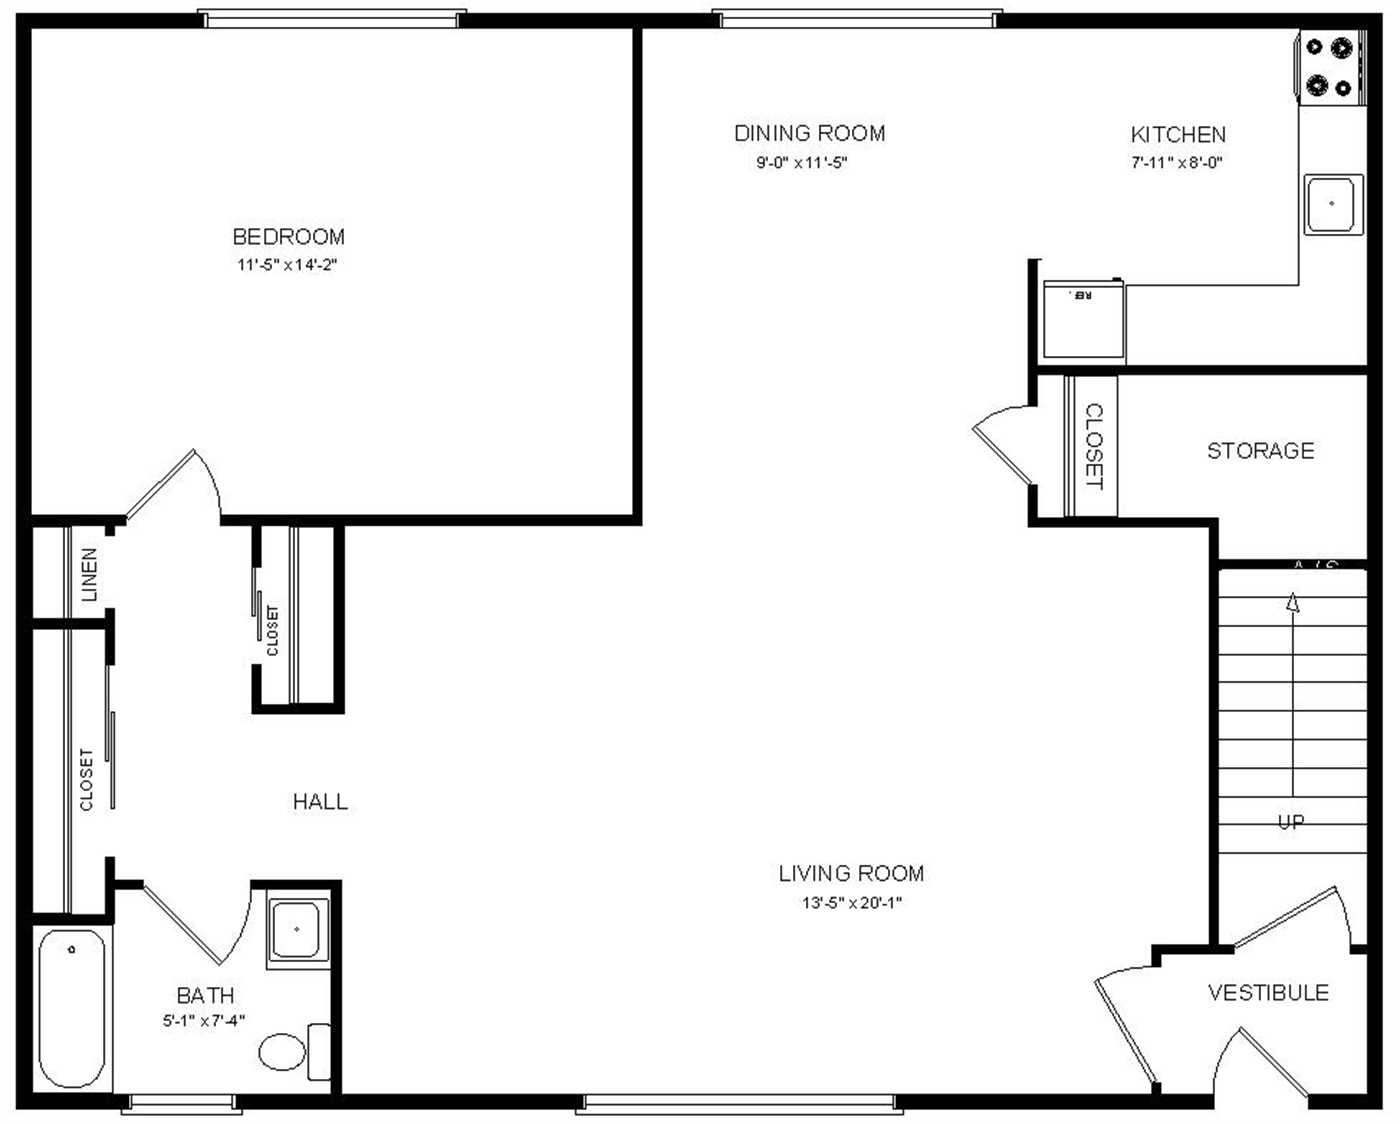 Diy printable floor plan templates plans free for Printable flooring